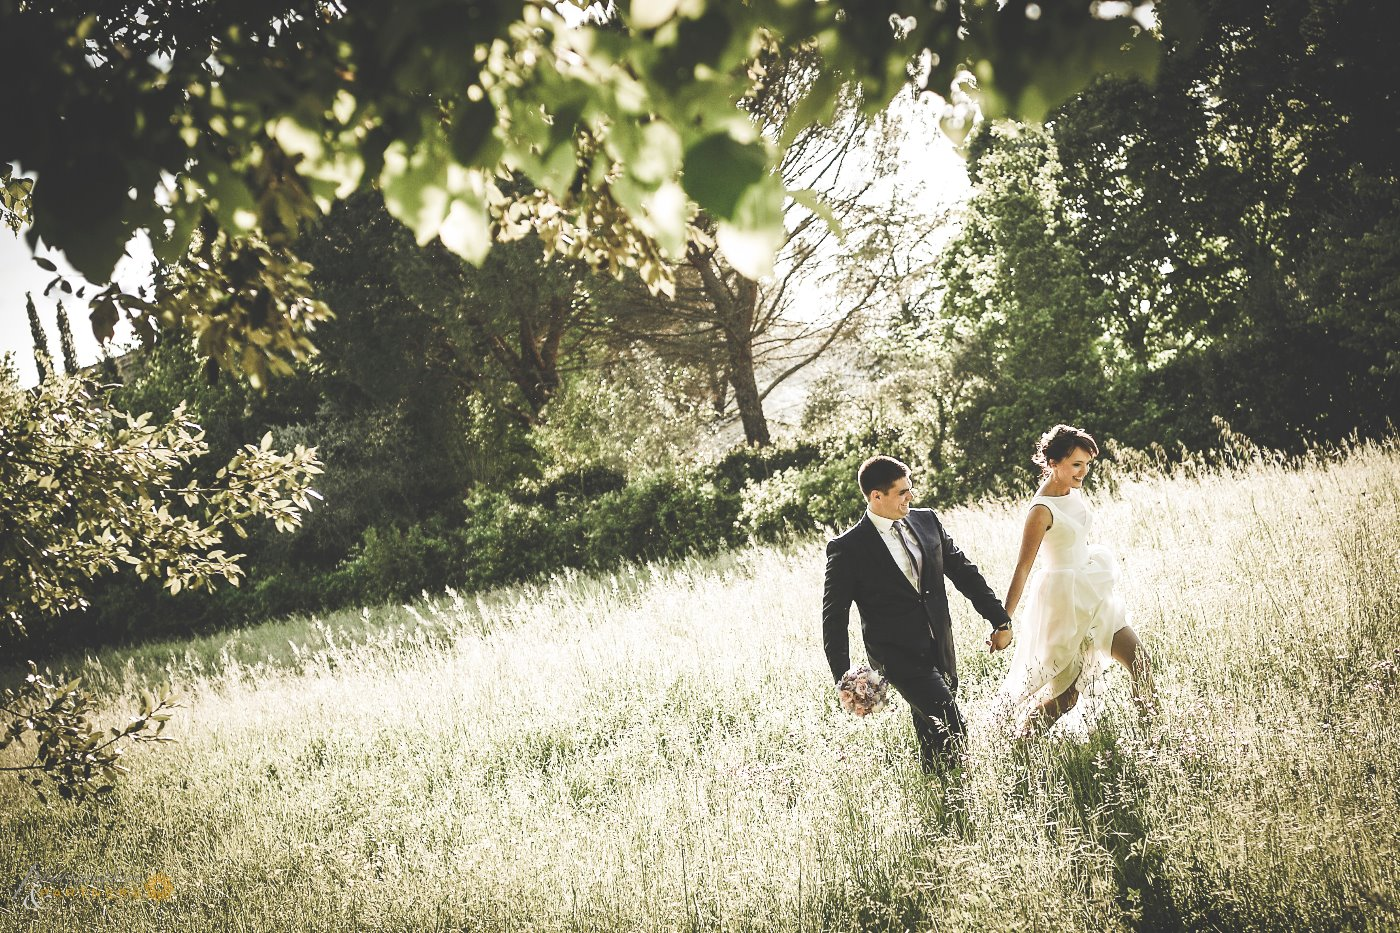 photographer_weddings_cortona_17.jpg